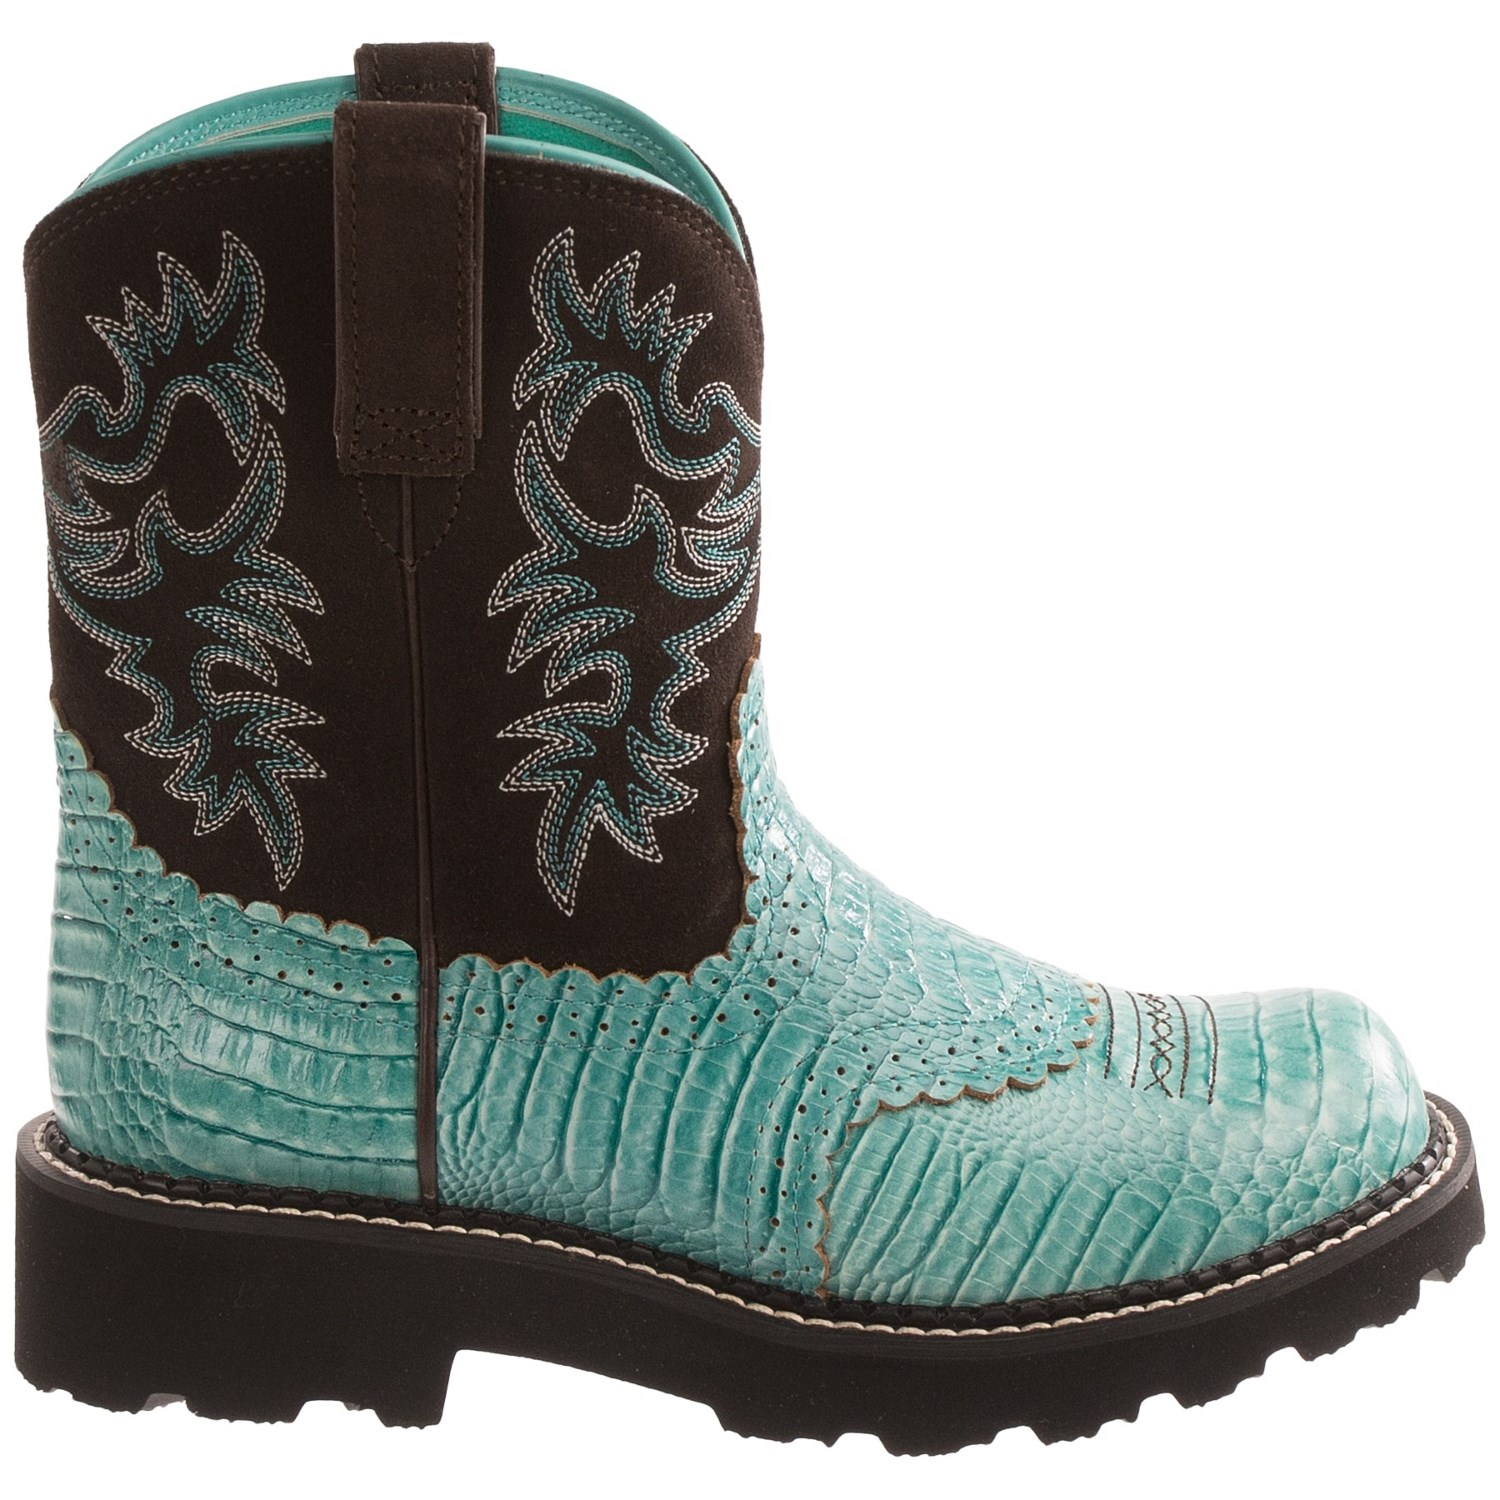 Ariat Fatbaby Boots For Women